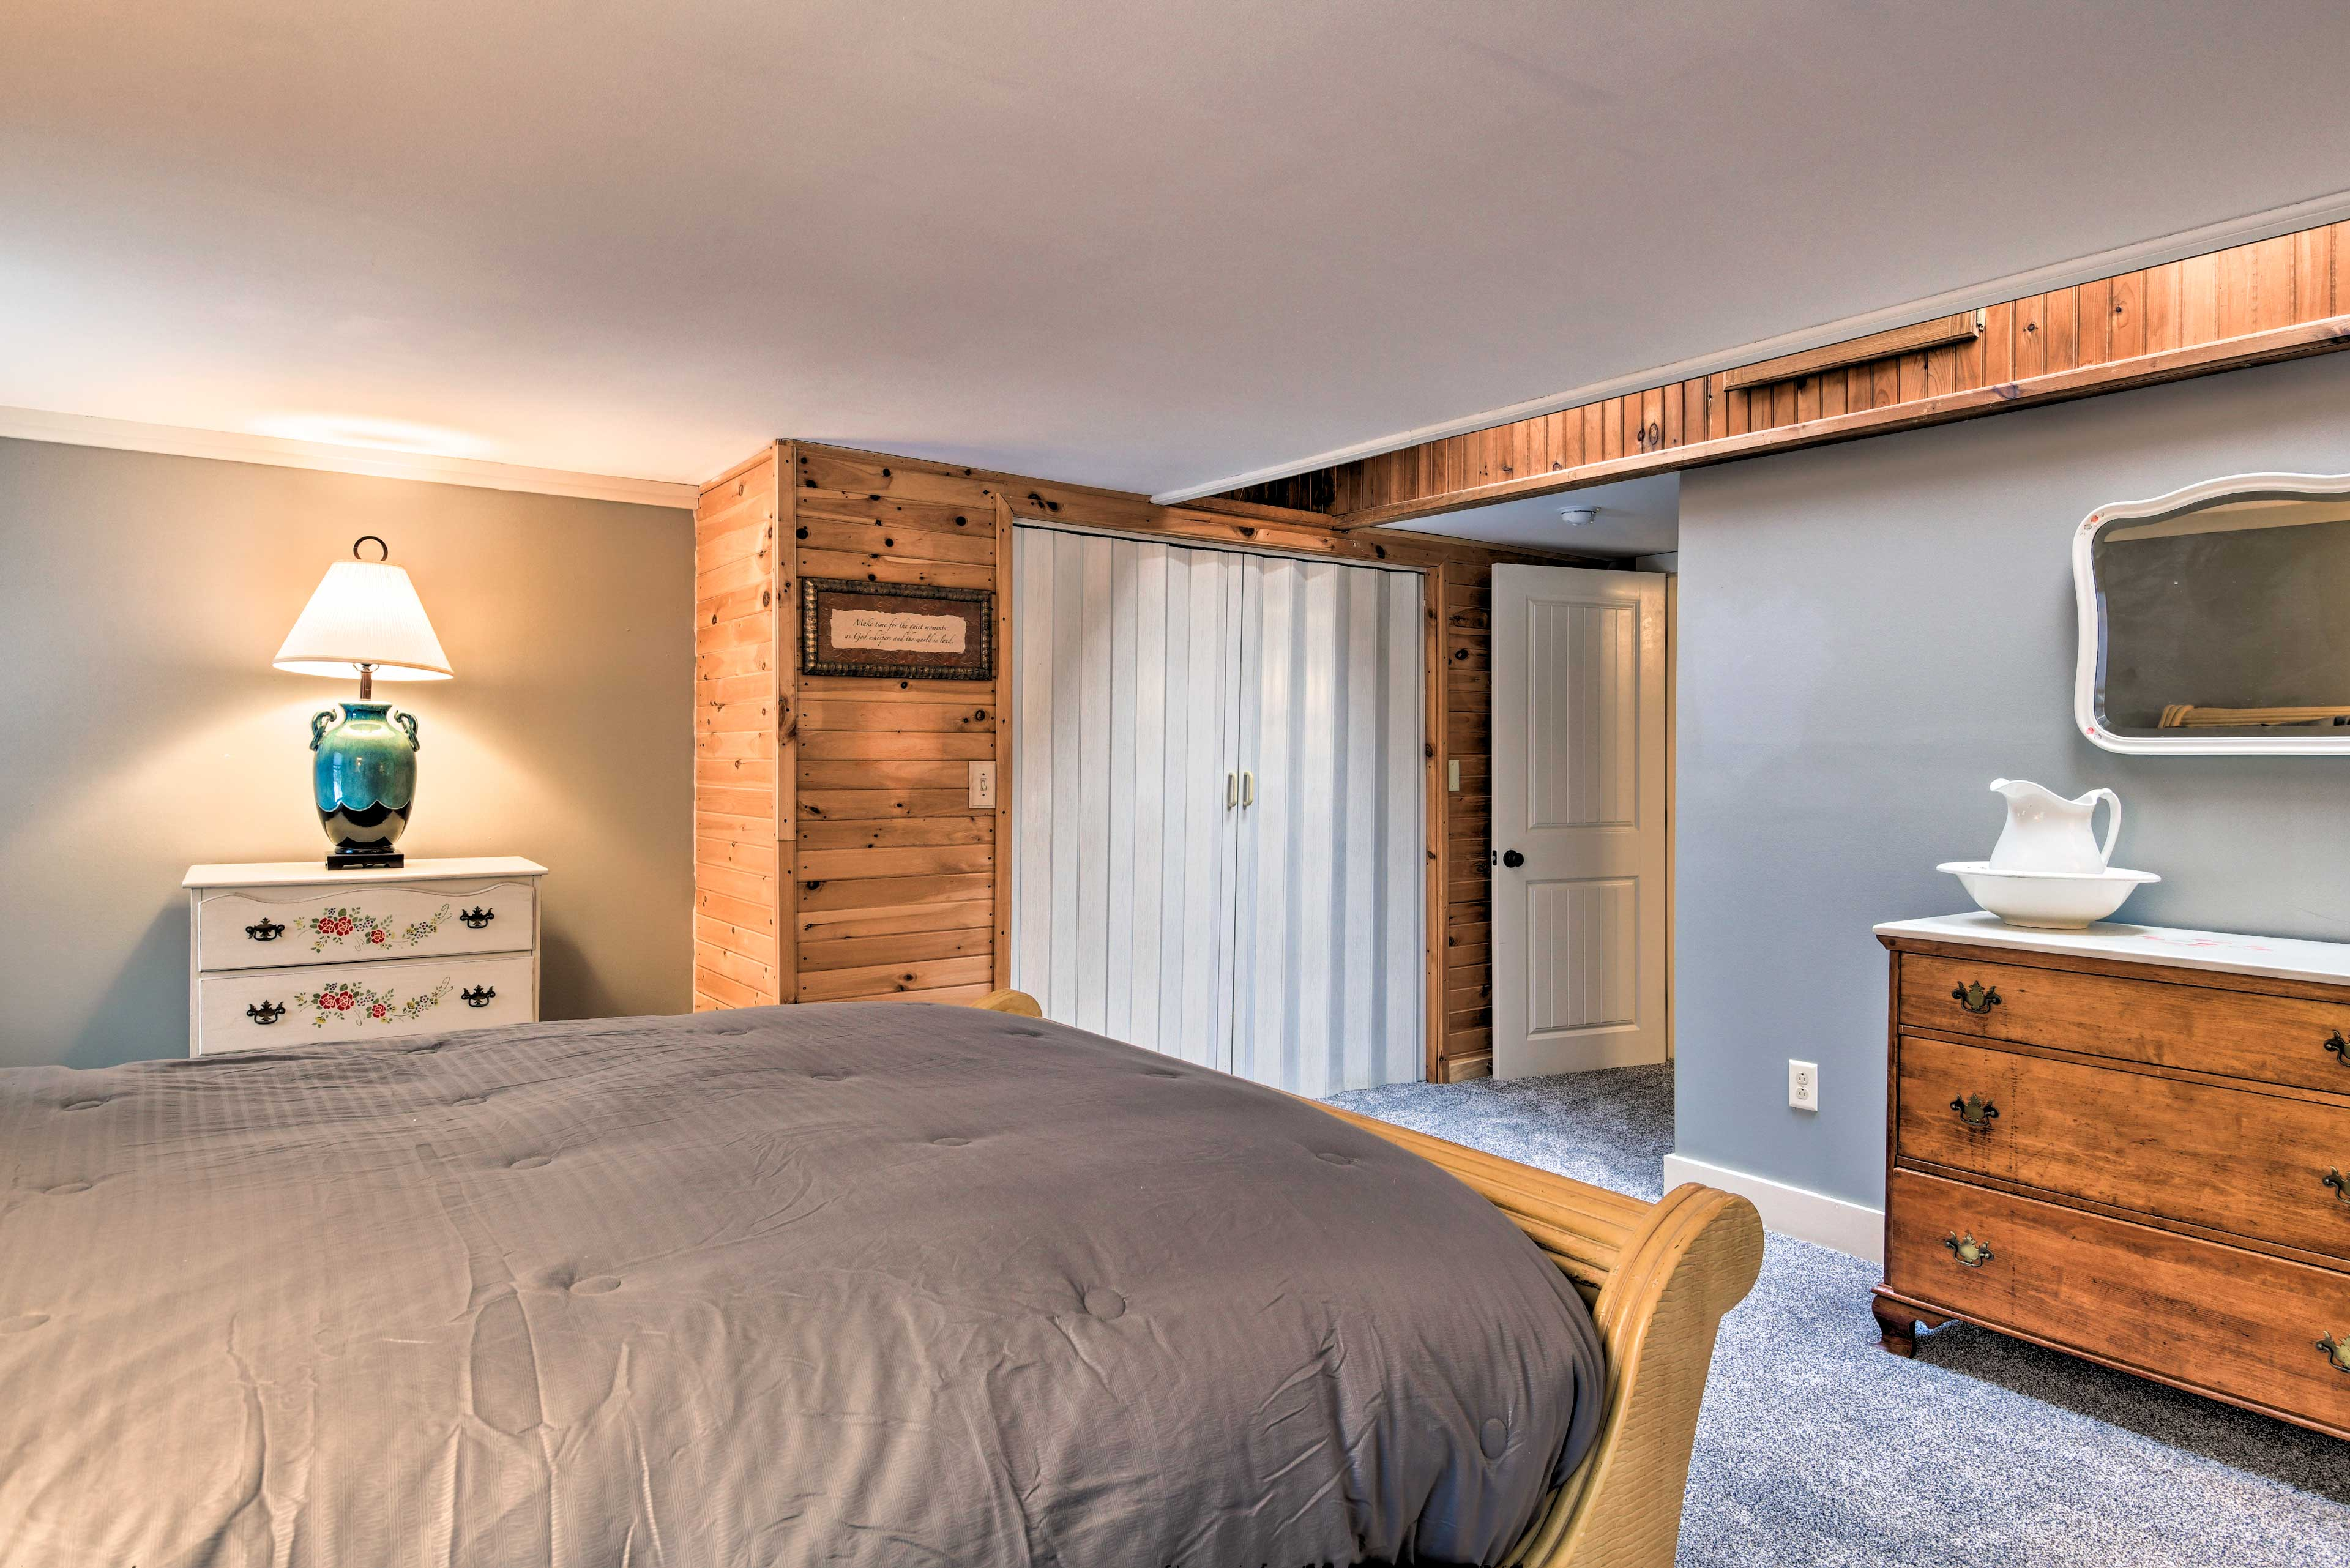 Each room has plenty of closet space and a dresser for all of your clothes.